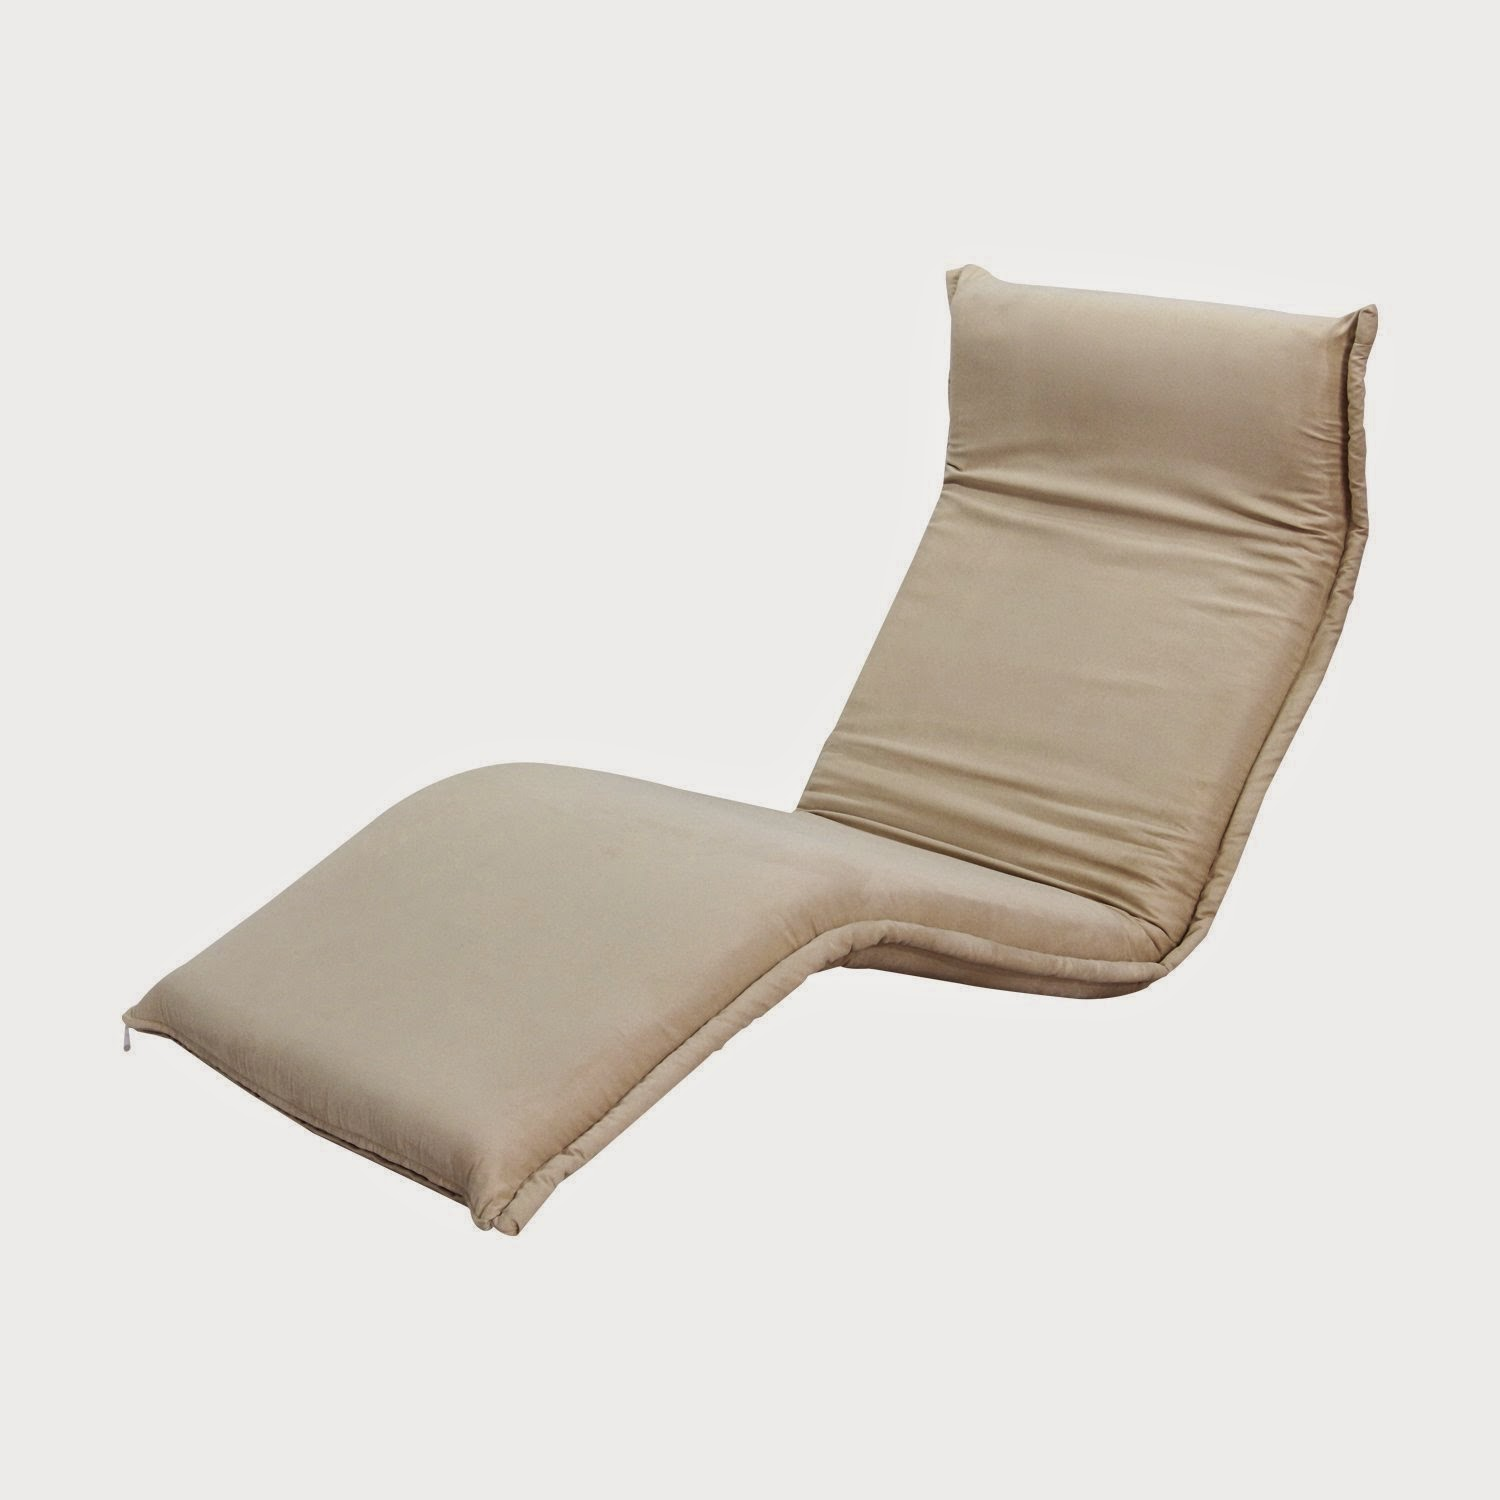 Sale Off 50 Homcom 75 Adjustable Folding Floor Sofa Chair Cream Outdoor Patio Furniture Sofa